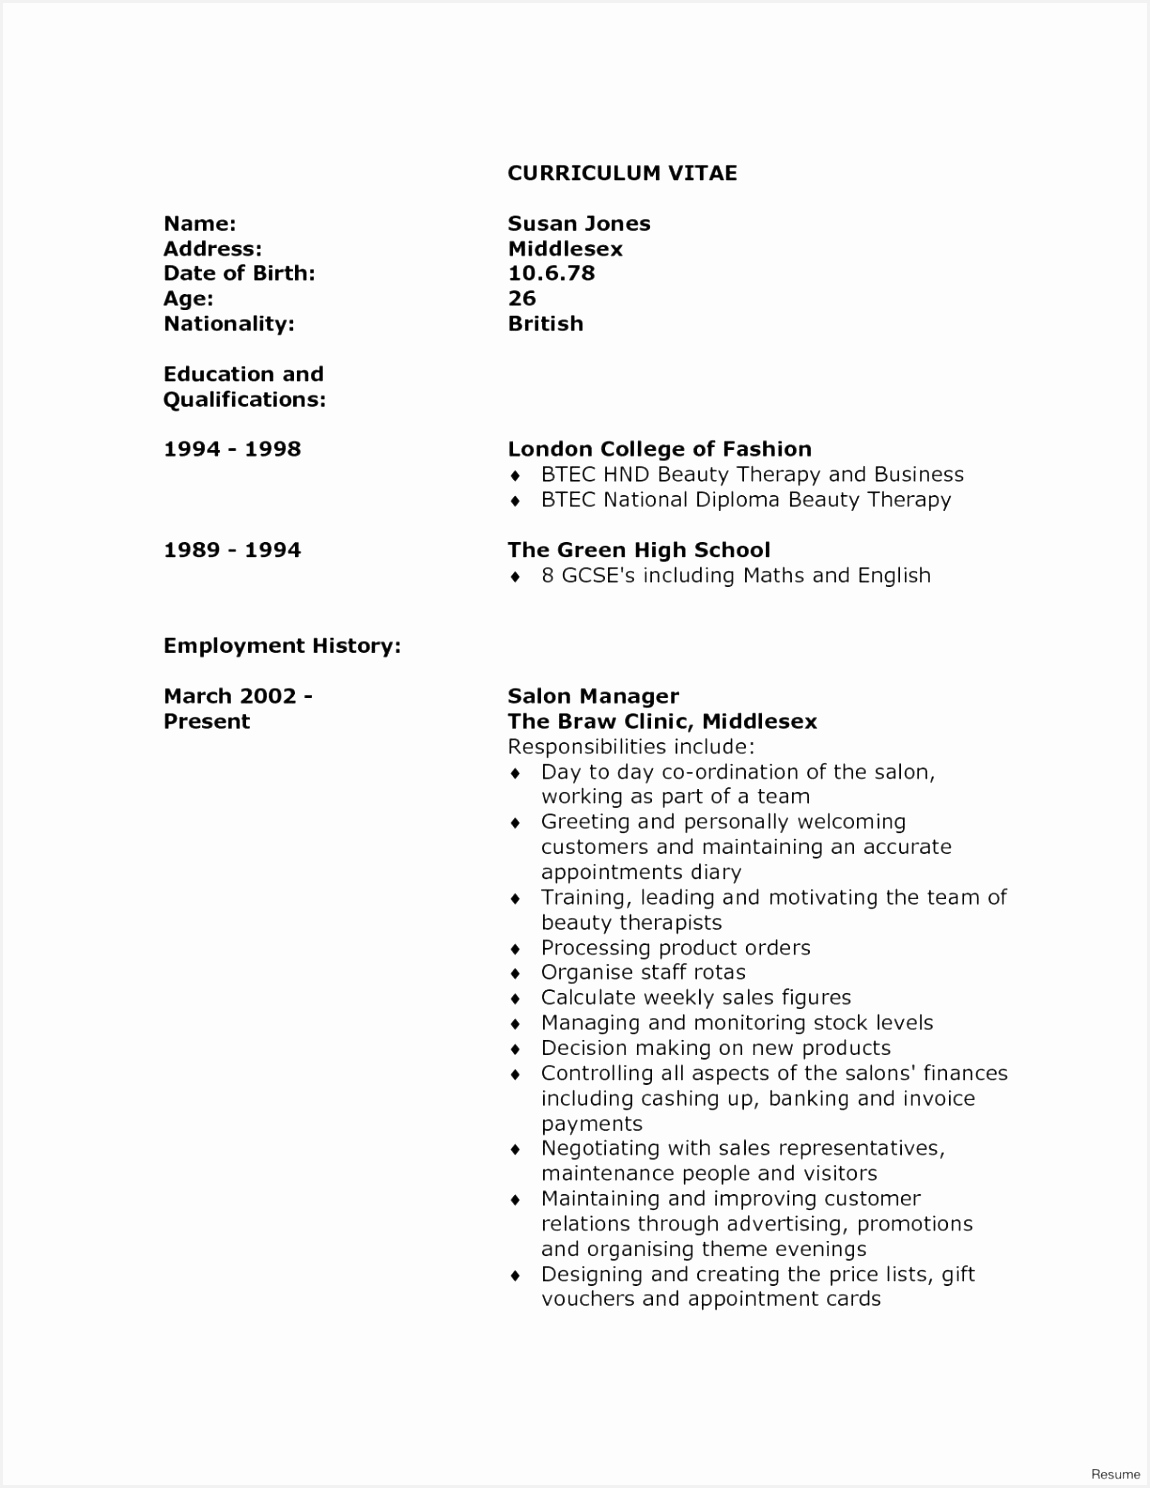 Resume Samples Tips F8kgi Elegant Best Resume Tips Awesome Resume Examples 0d Good Looking Resume Of 7 Resume Samples Tips